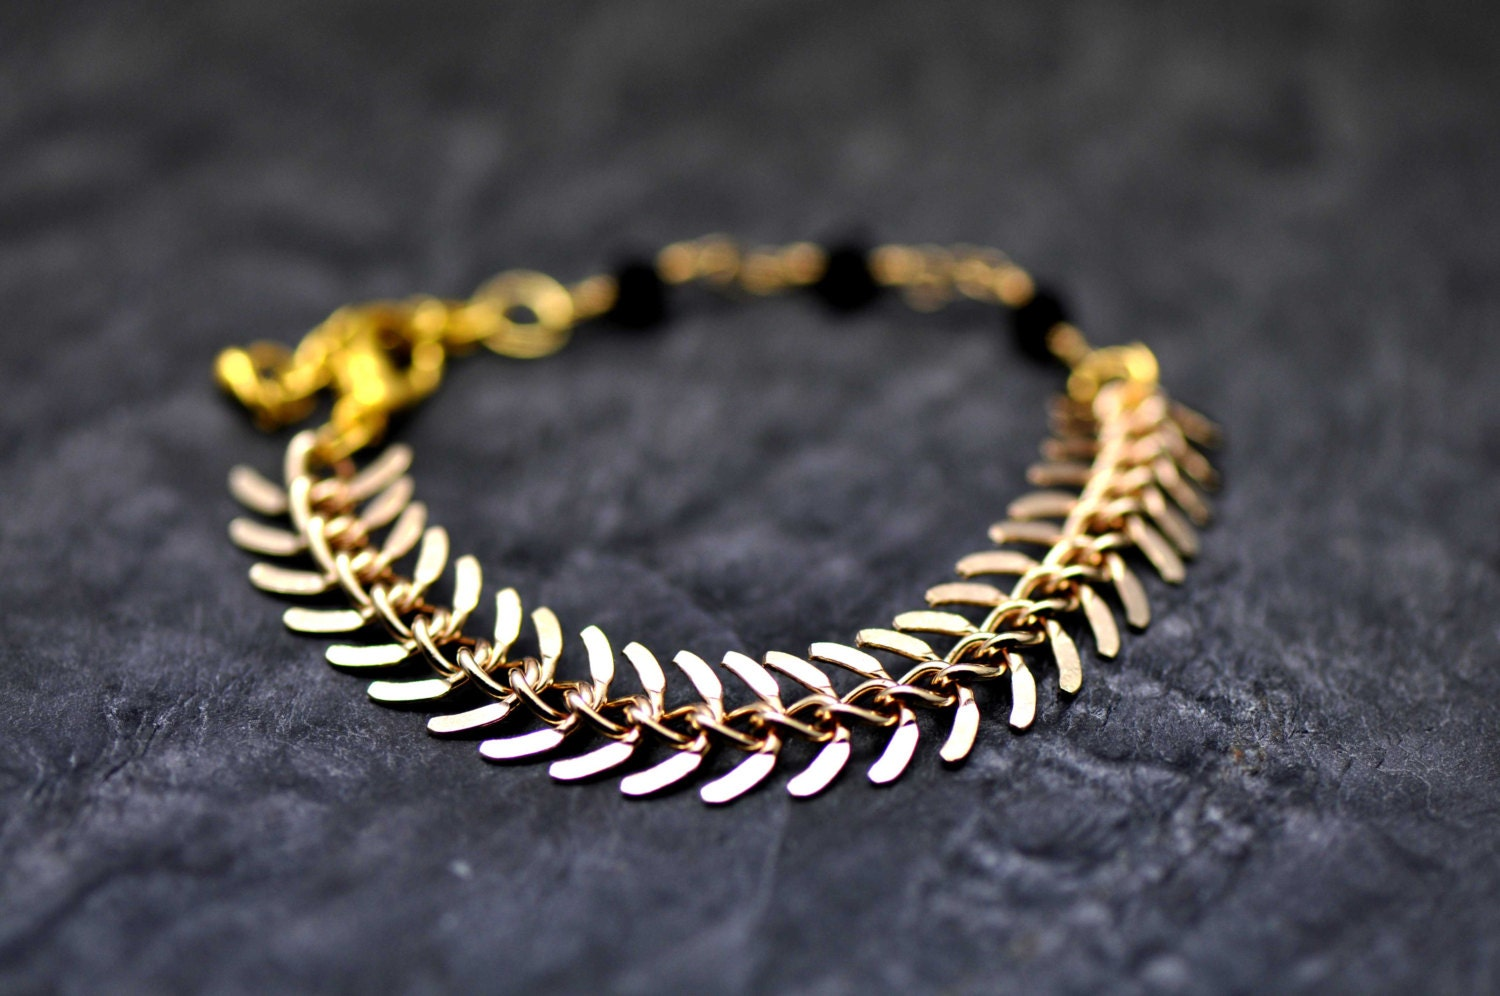 Fishbone bracelet, made with gold plated fishbone chain and a beautiful chain maid with black crystals - BBTAR